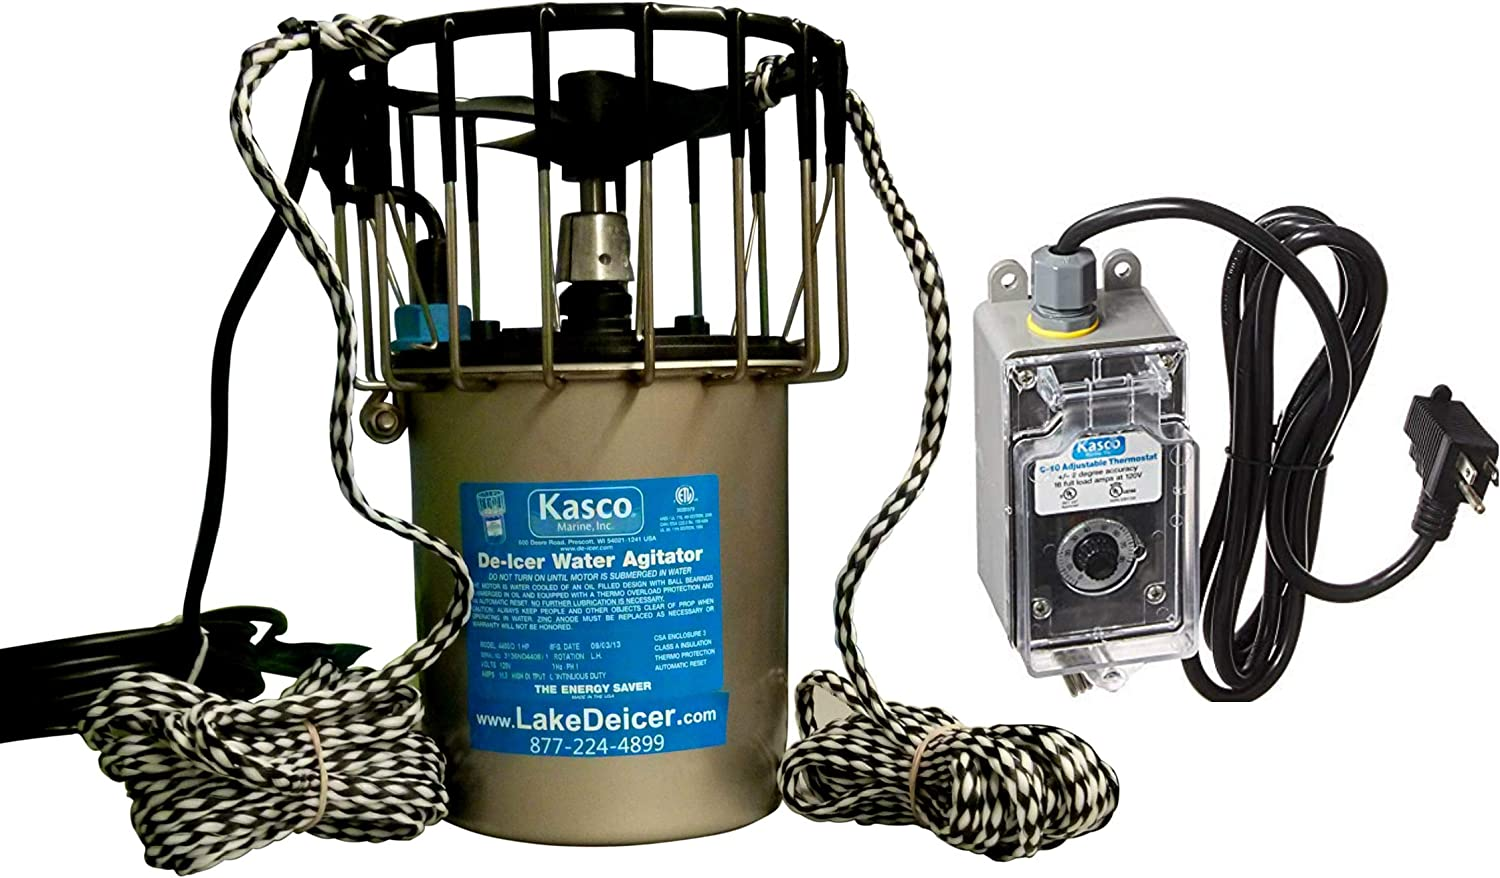 Kasco Deicer 3400D50 w/C-10 Timer Thermostat Controller 3/4 HP 50 FT Cord